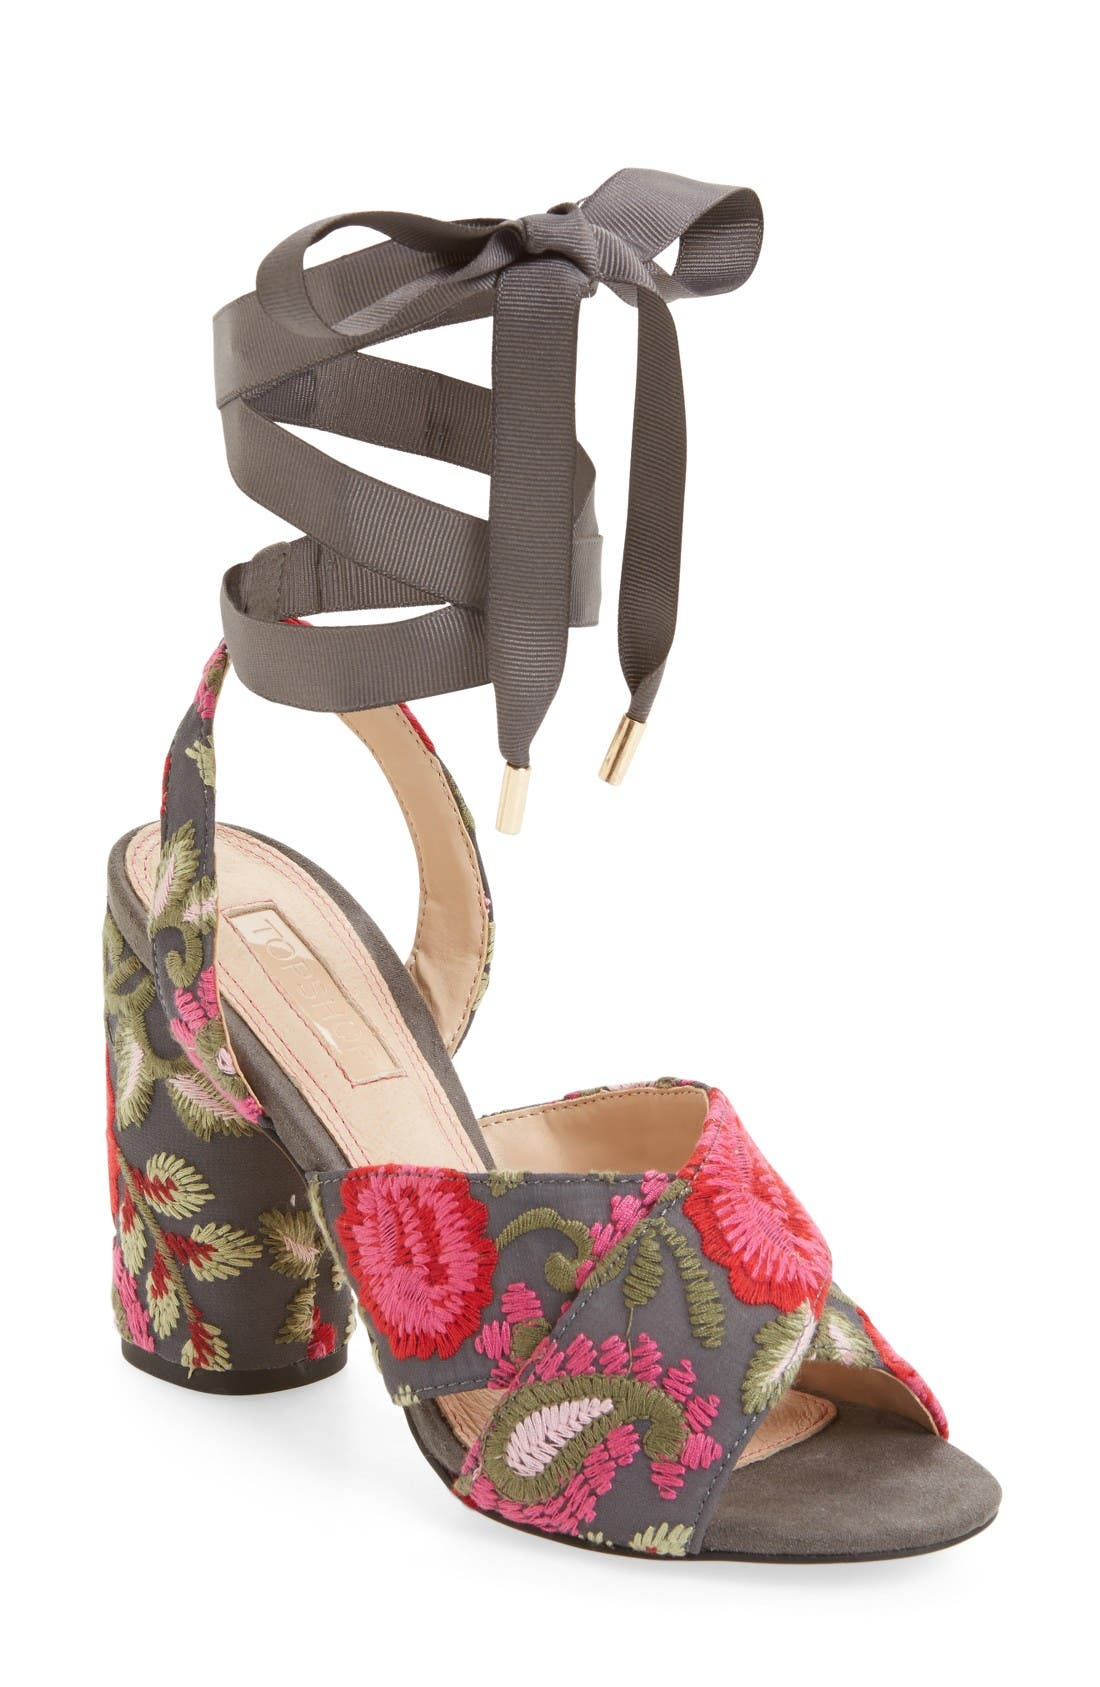 Alternate Image 1 Selected - Topshop Reena Embroidered Sandal (Women)